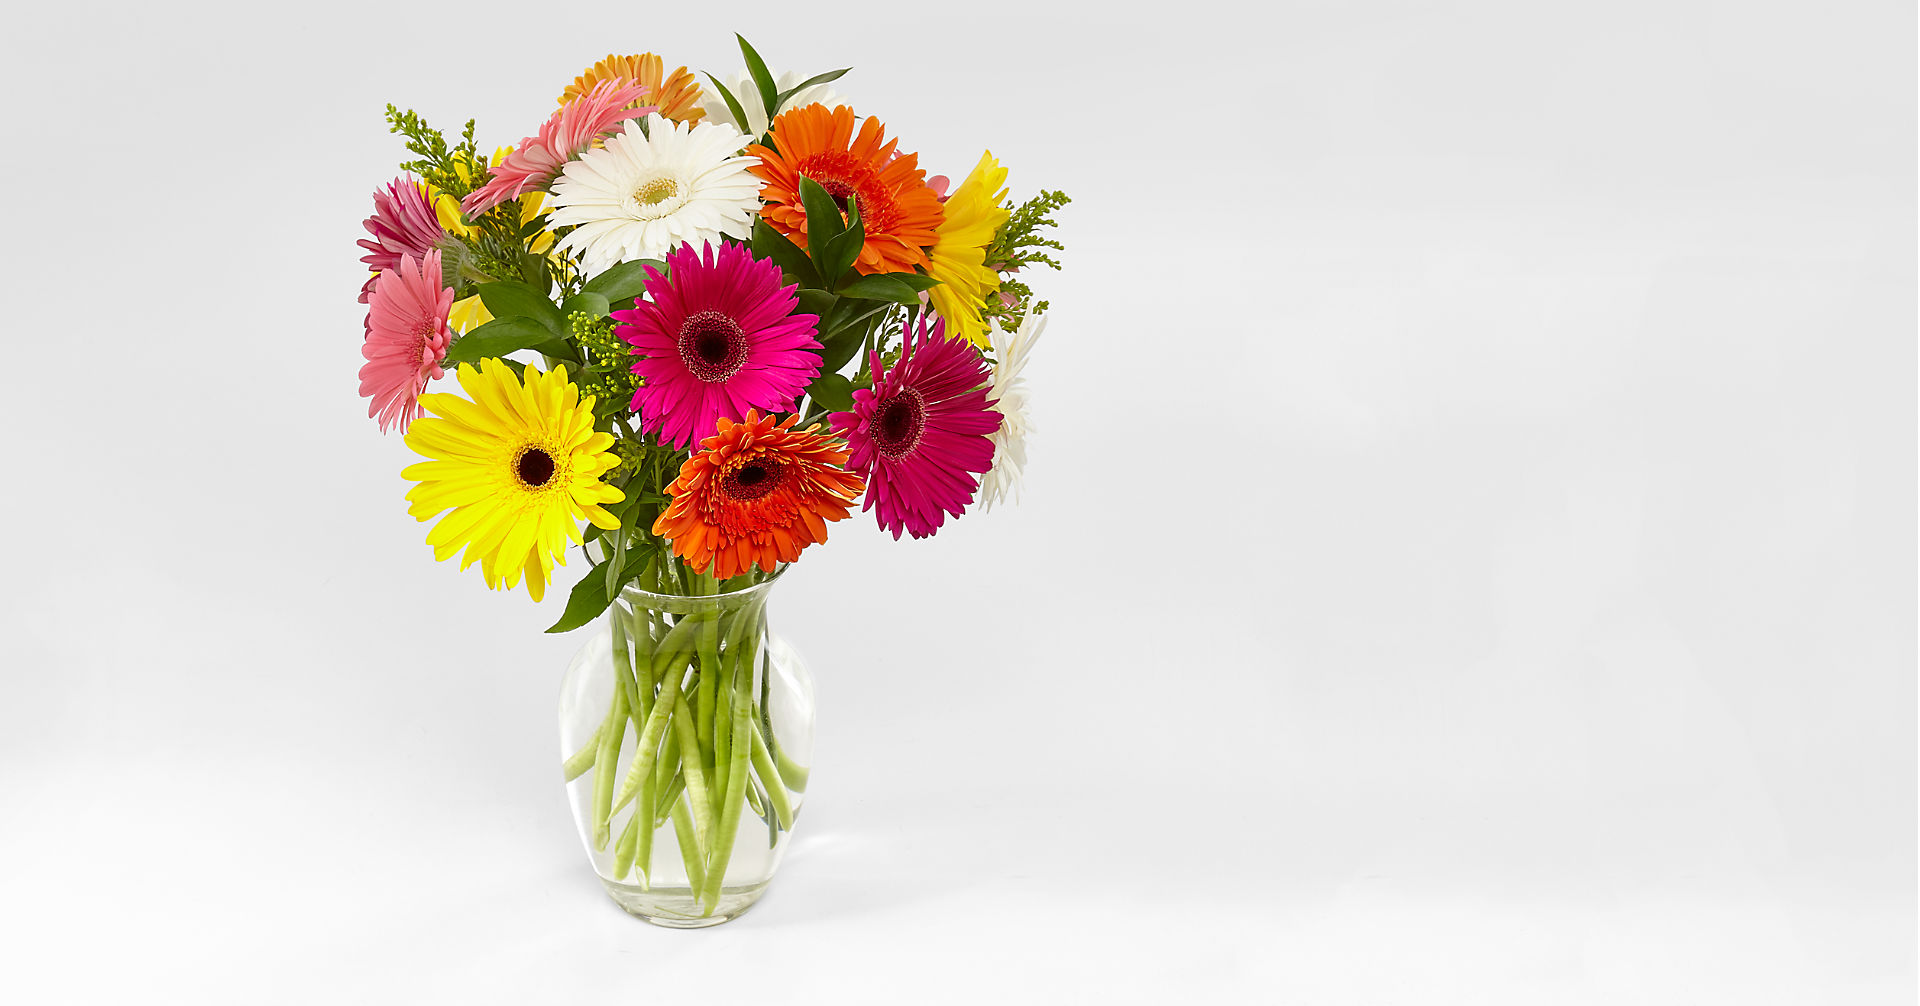 Colorful World Gerbera Daisy Bouquet - 15 Stems - VASE INCLUDED - Image 1 Of 4